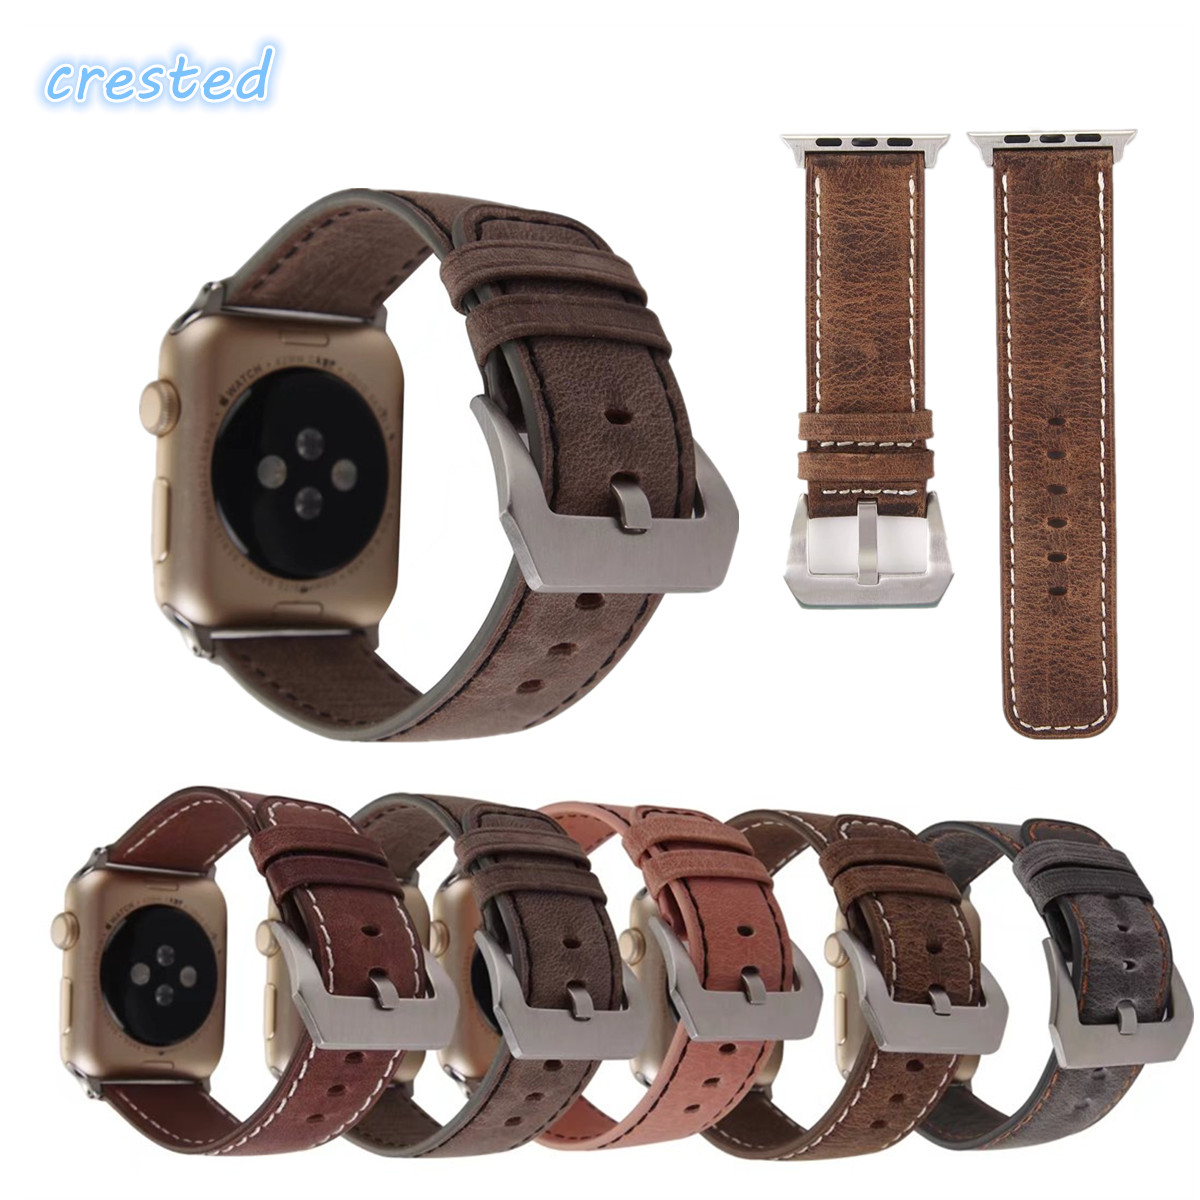 купить CRESTED Retro Leather Watch Band Strap for Apple Watch 42 mm 38 mm replacement Wrist Bracelet watchband for iwatch series 3/2/1 по цене 681.34 рублей